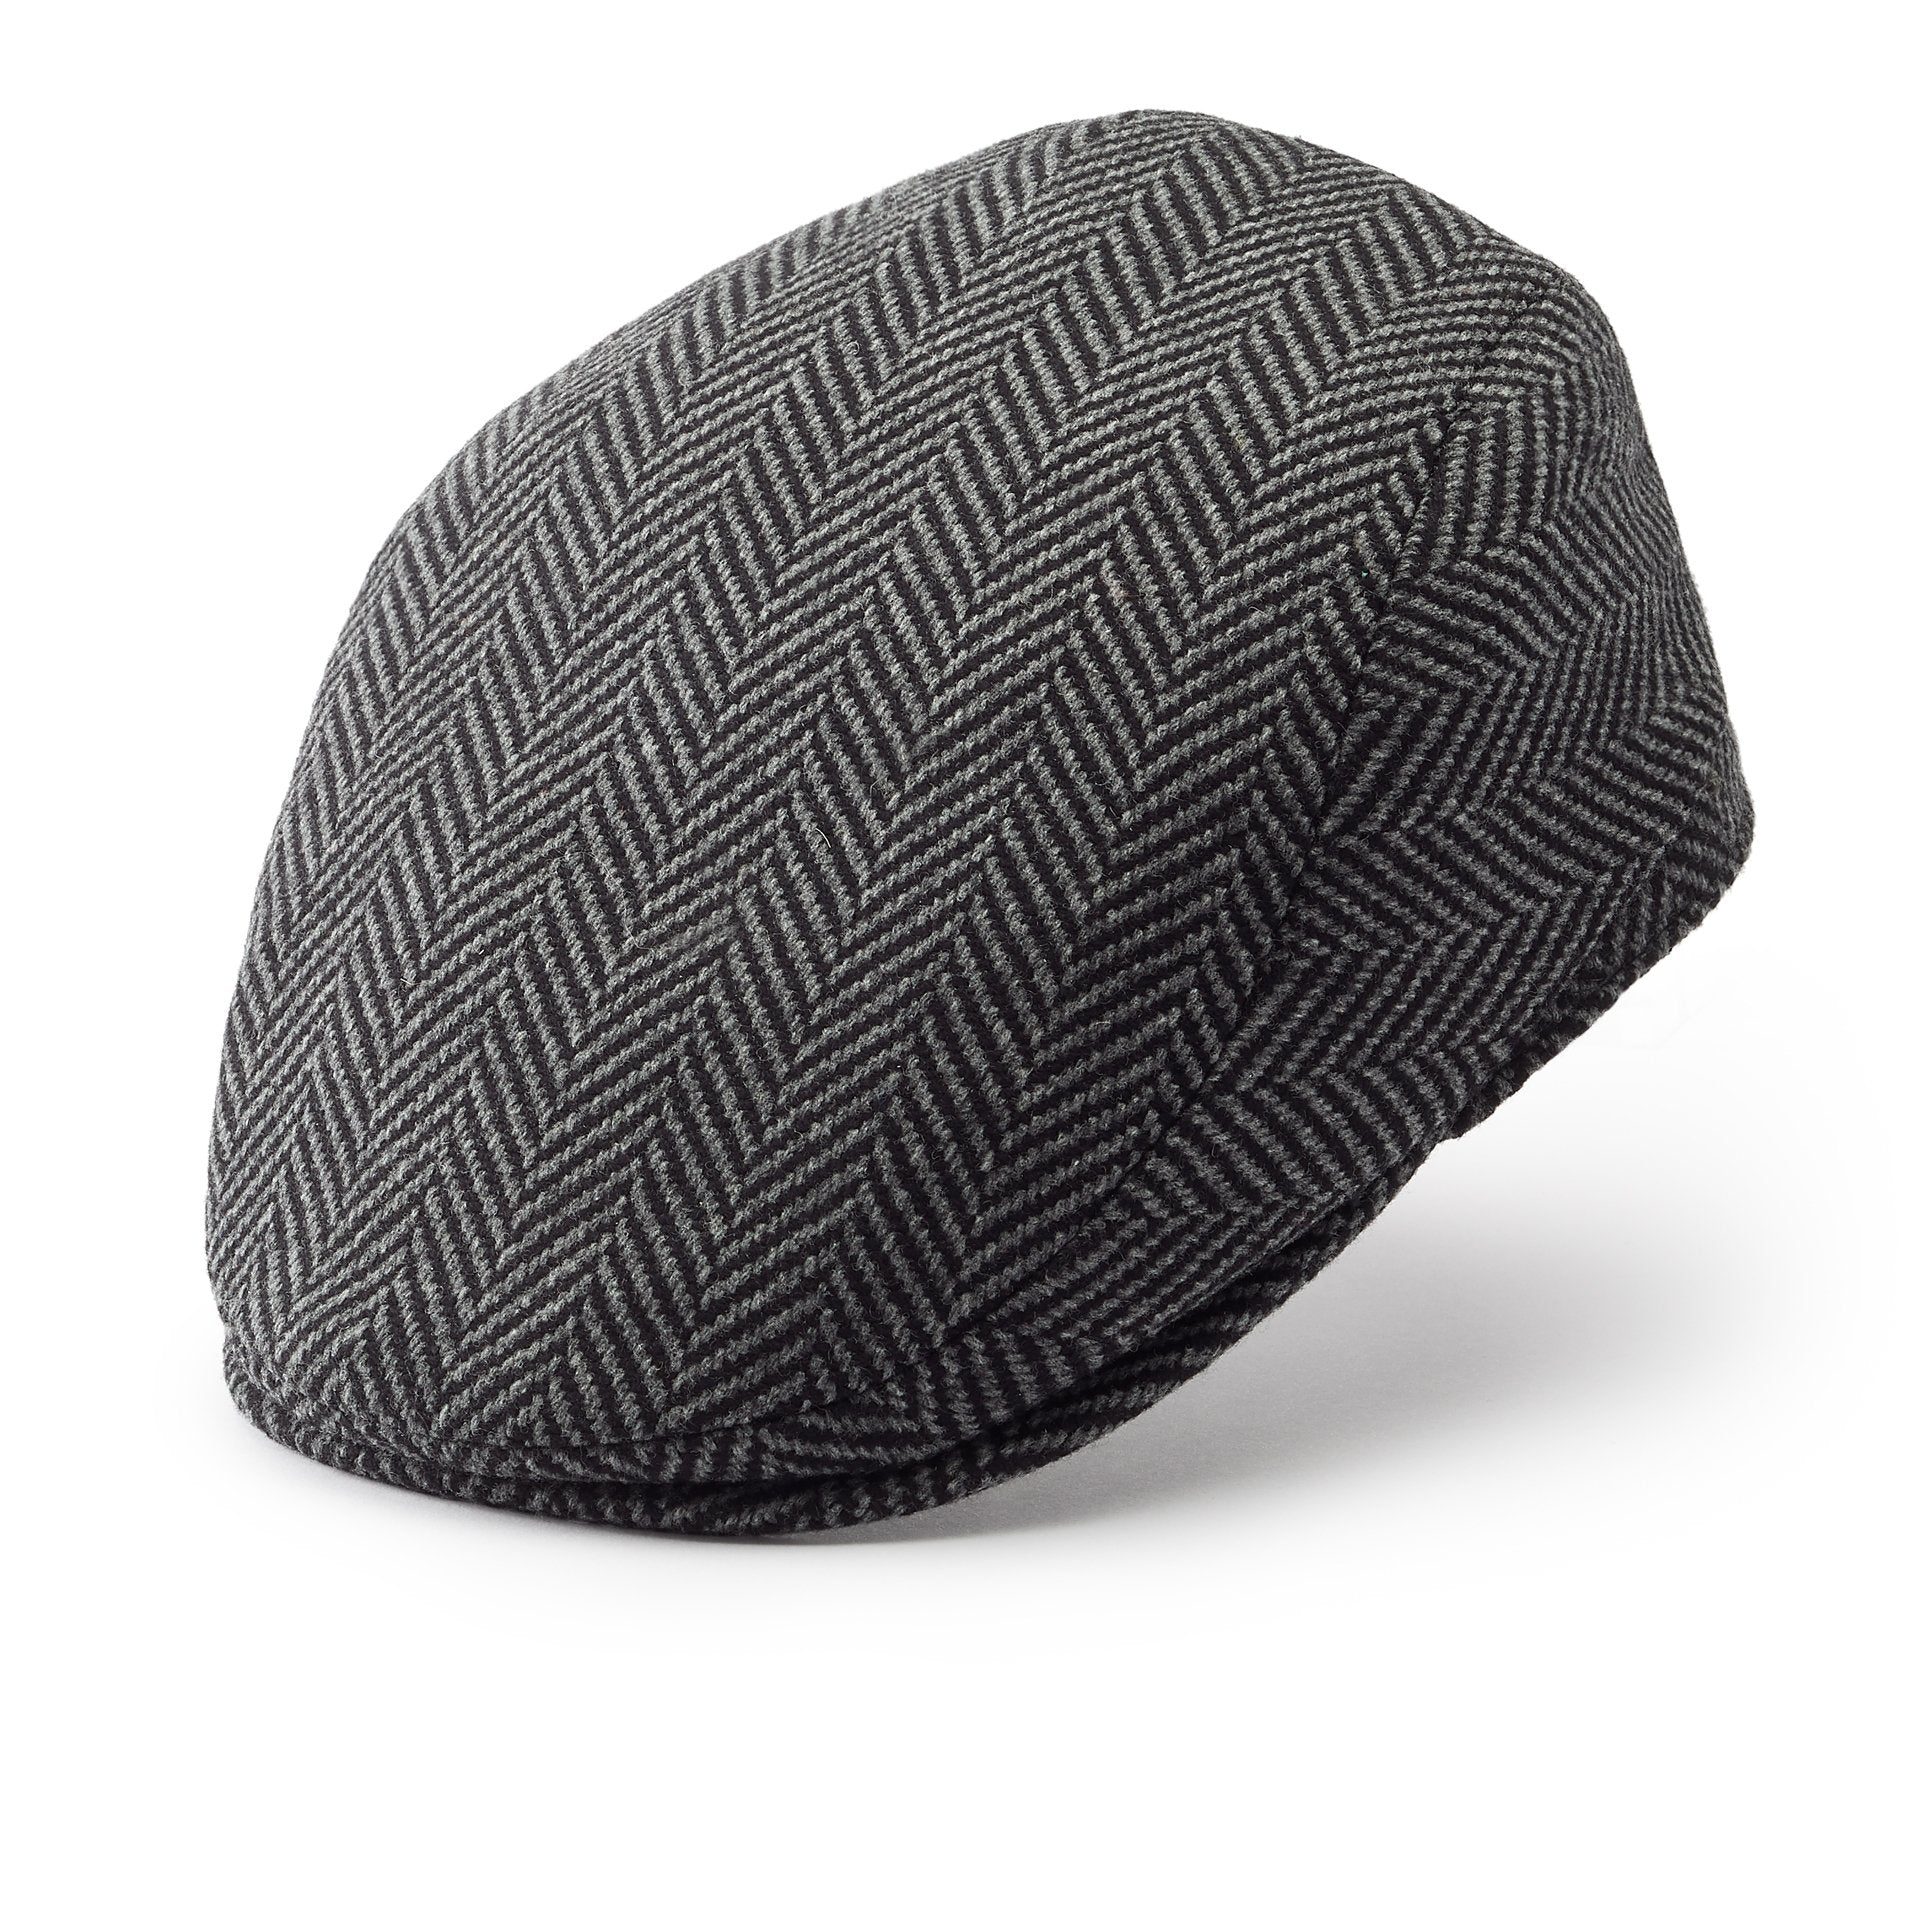 Escorial Wool Grosvenor flat cap - Flat caps - Lock & Co. Hatters London UK